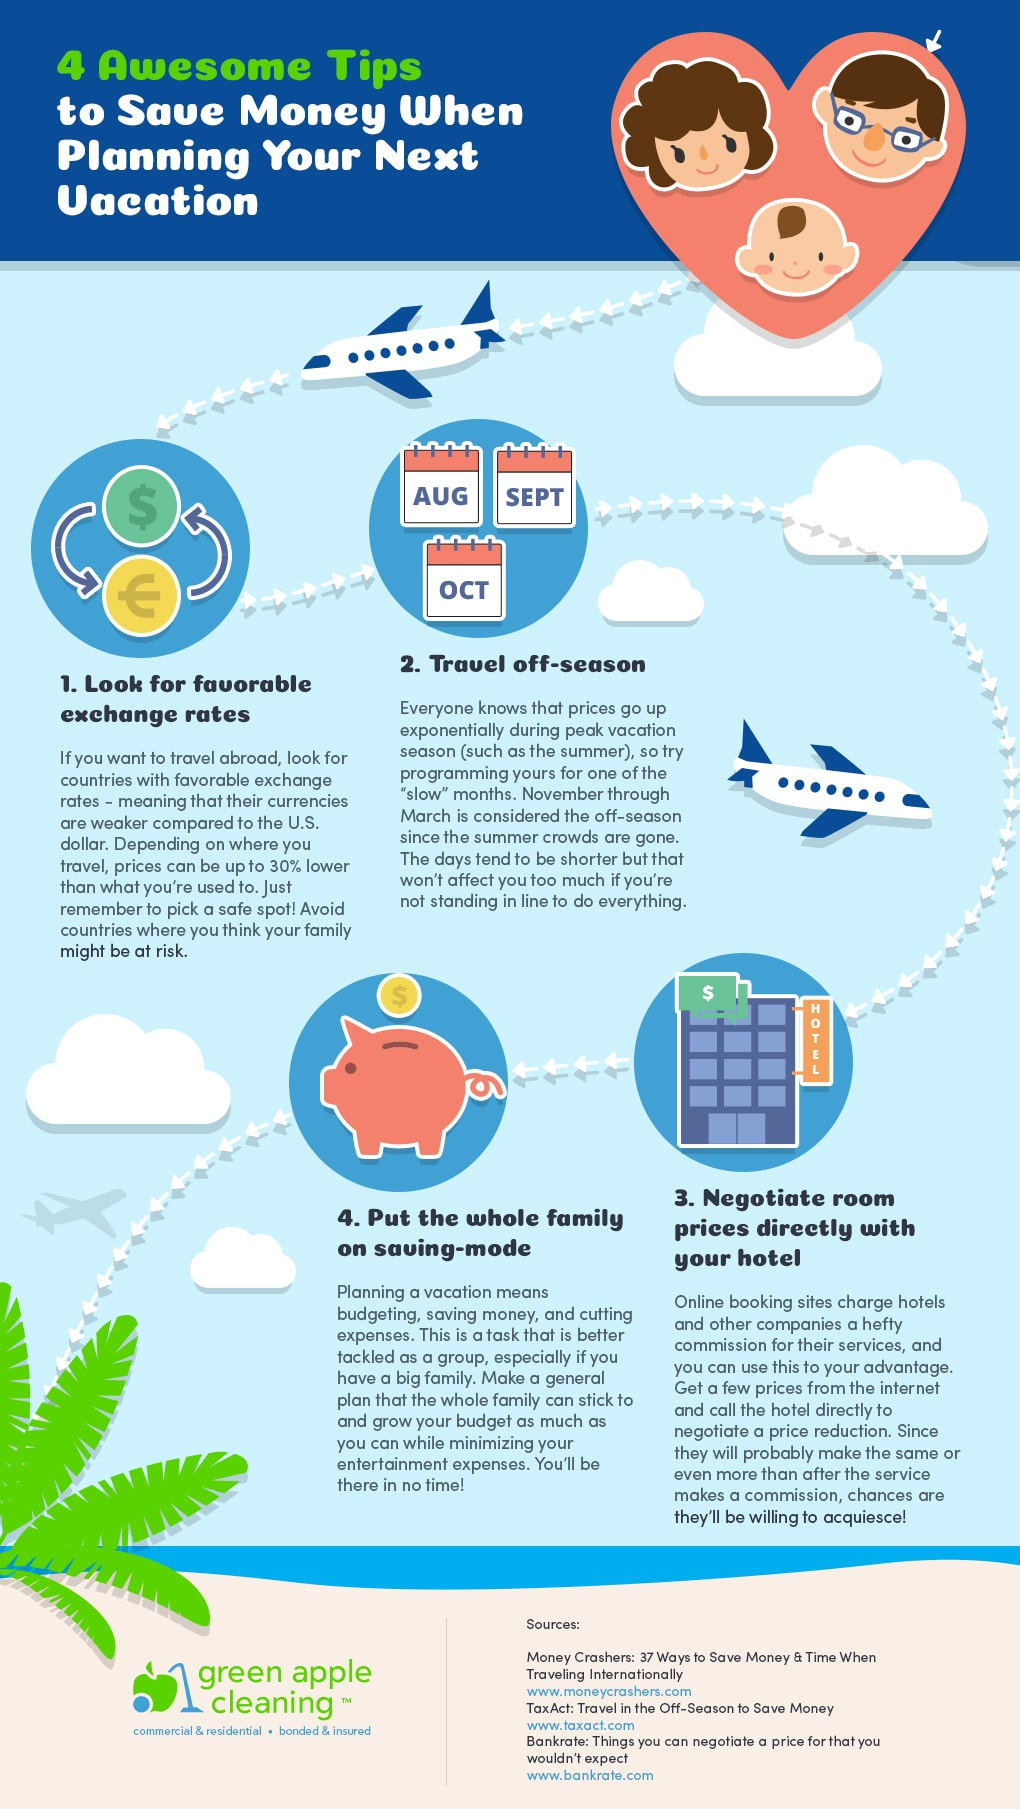 4 Awesome Tips to Save Money When Planning Your Next Vacation